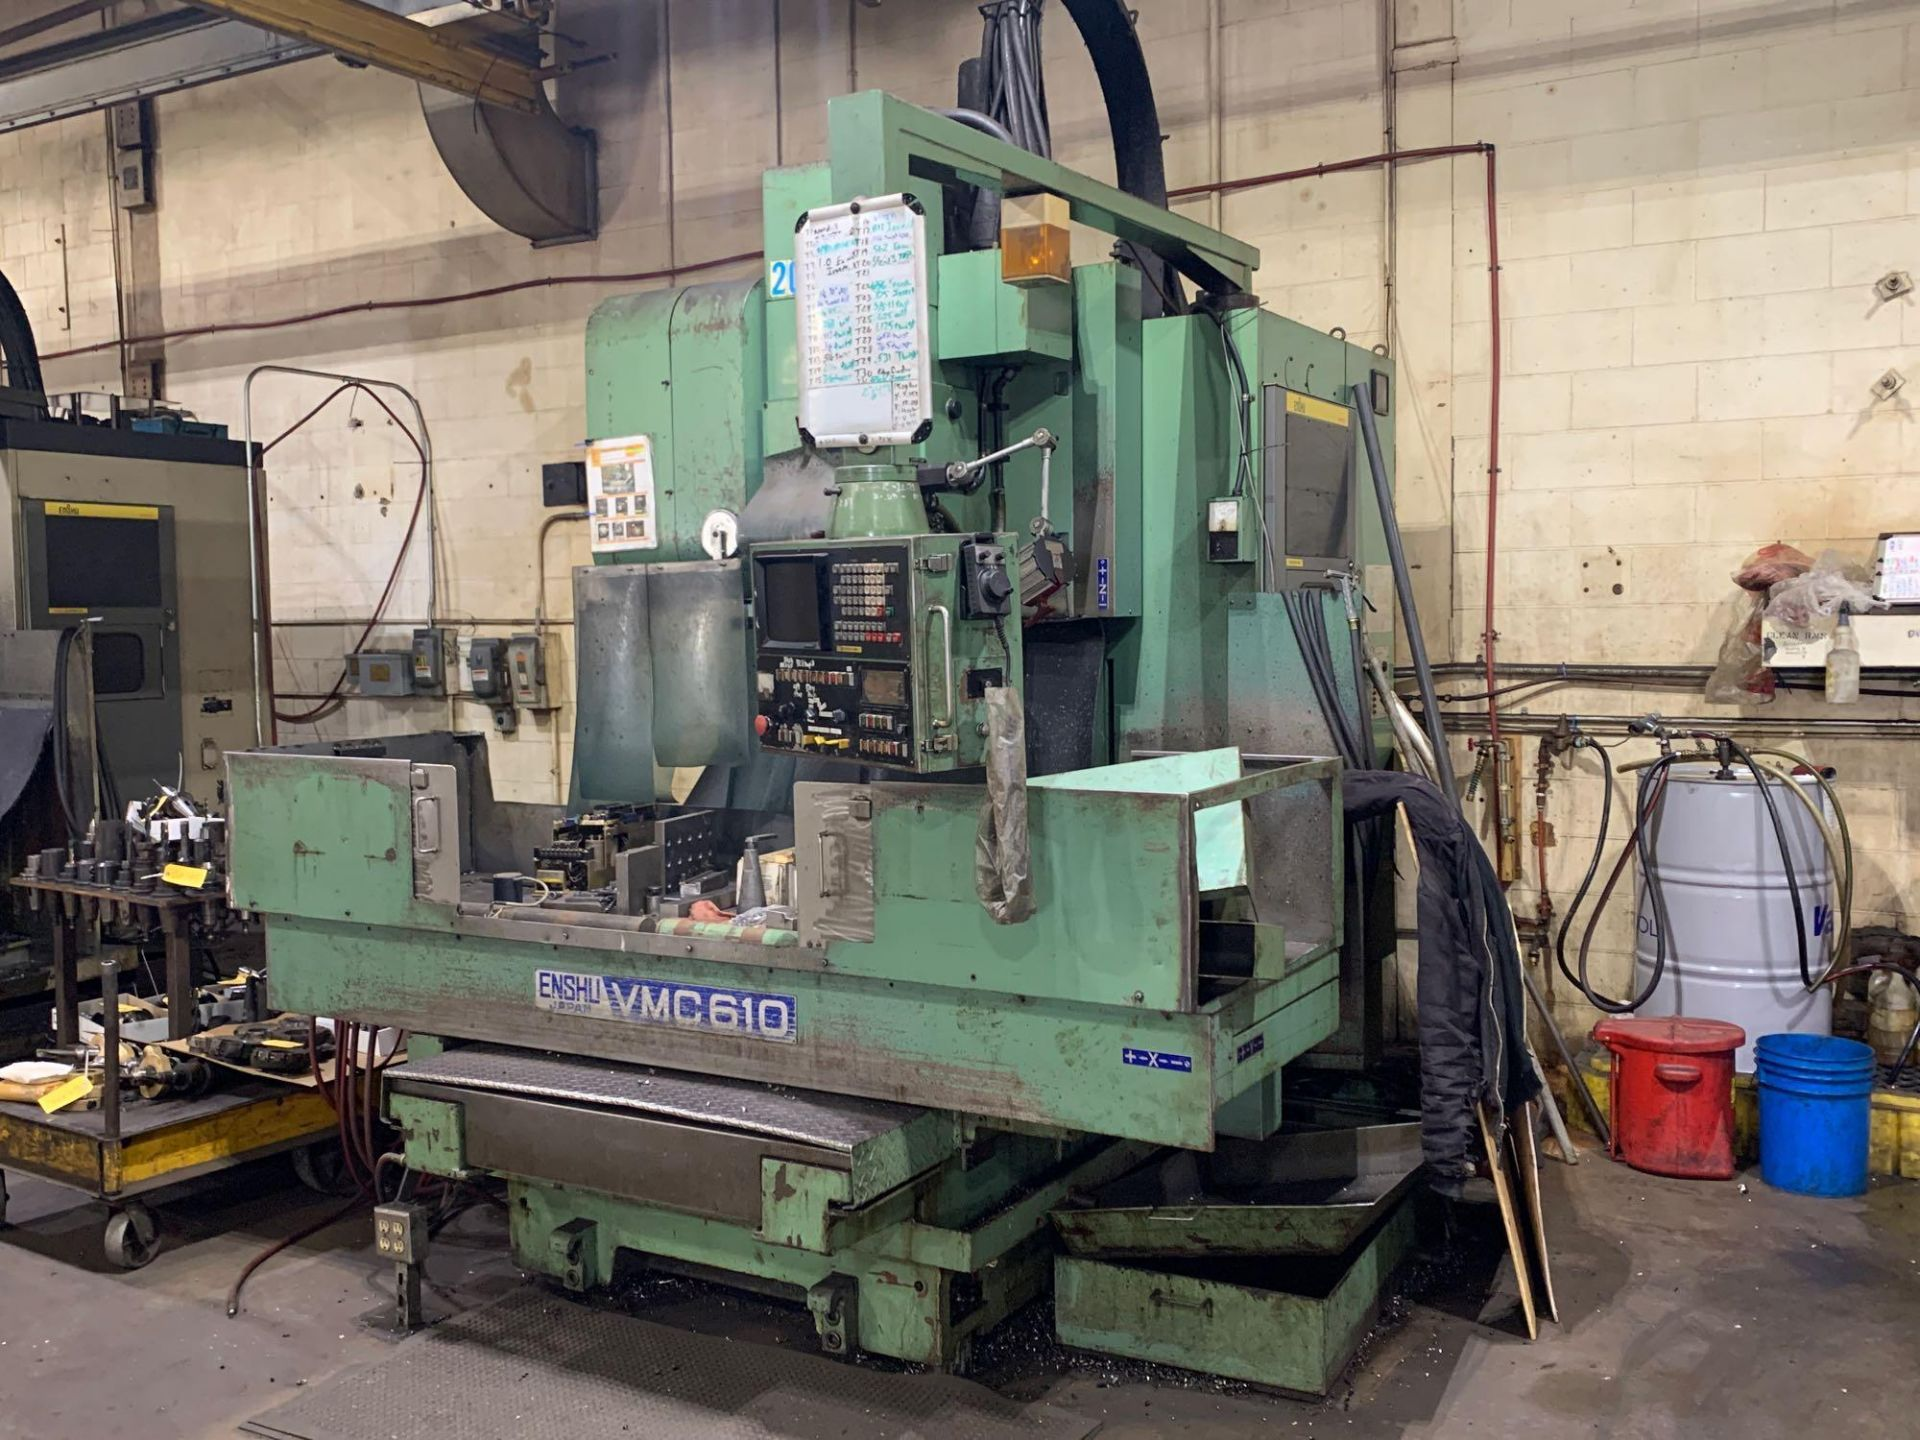 ENSHU VMC 610 CNC Vertical Machining Center Model: VMC 610 Serial Number: 145 Number of Pockets Maga - Image 2 of 6